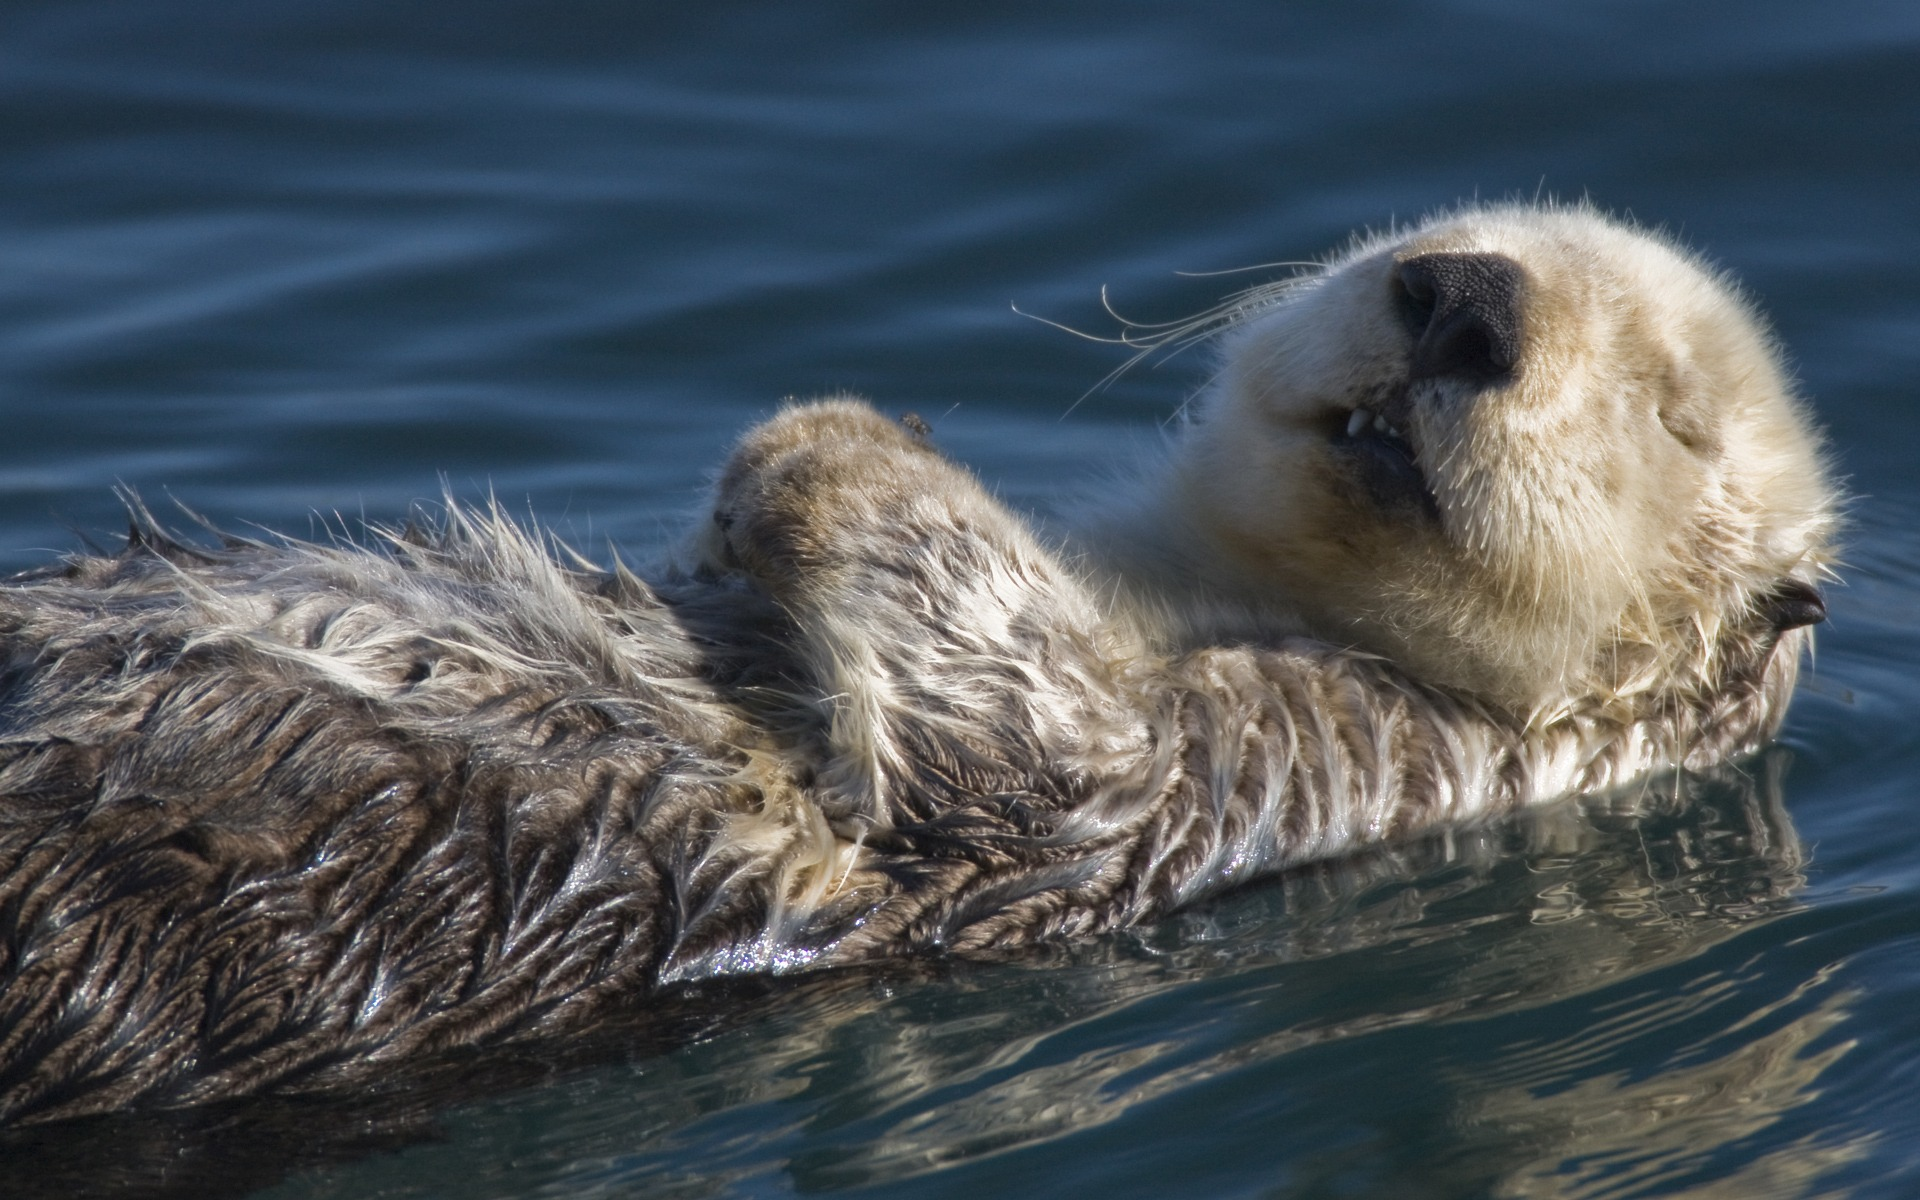 Sea Otter Wallpaper Other Animals Wallpapers in jpg format for